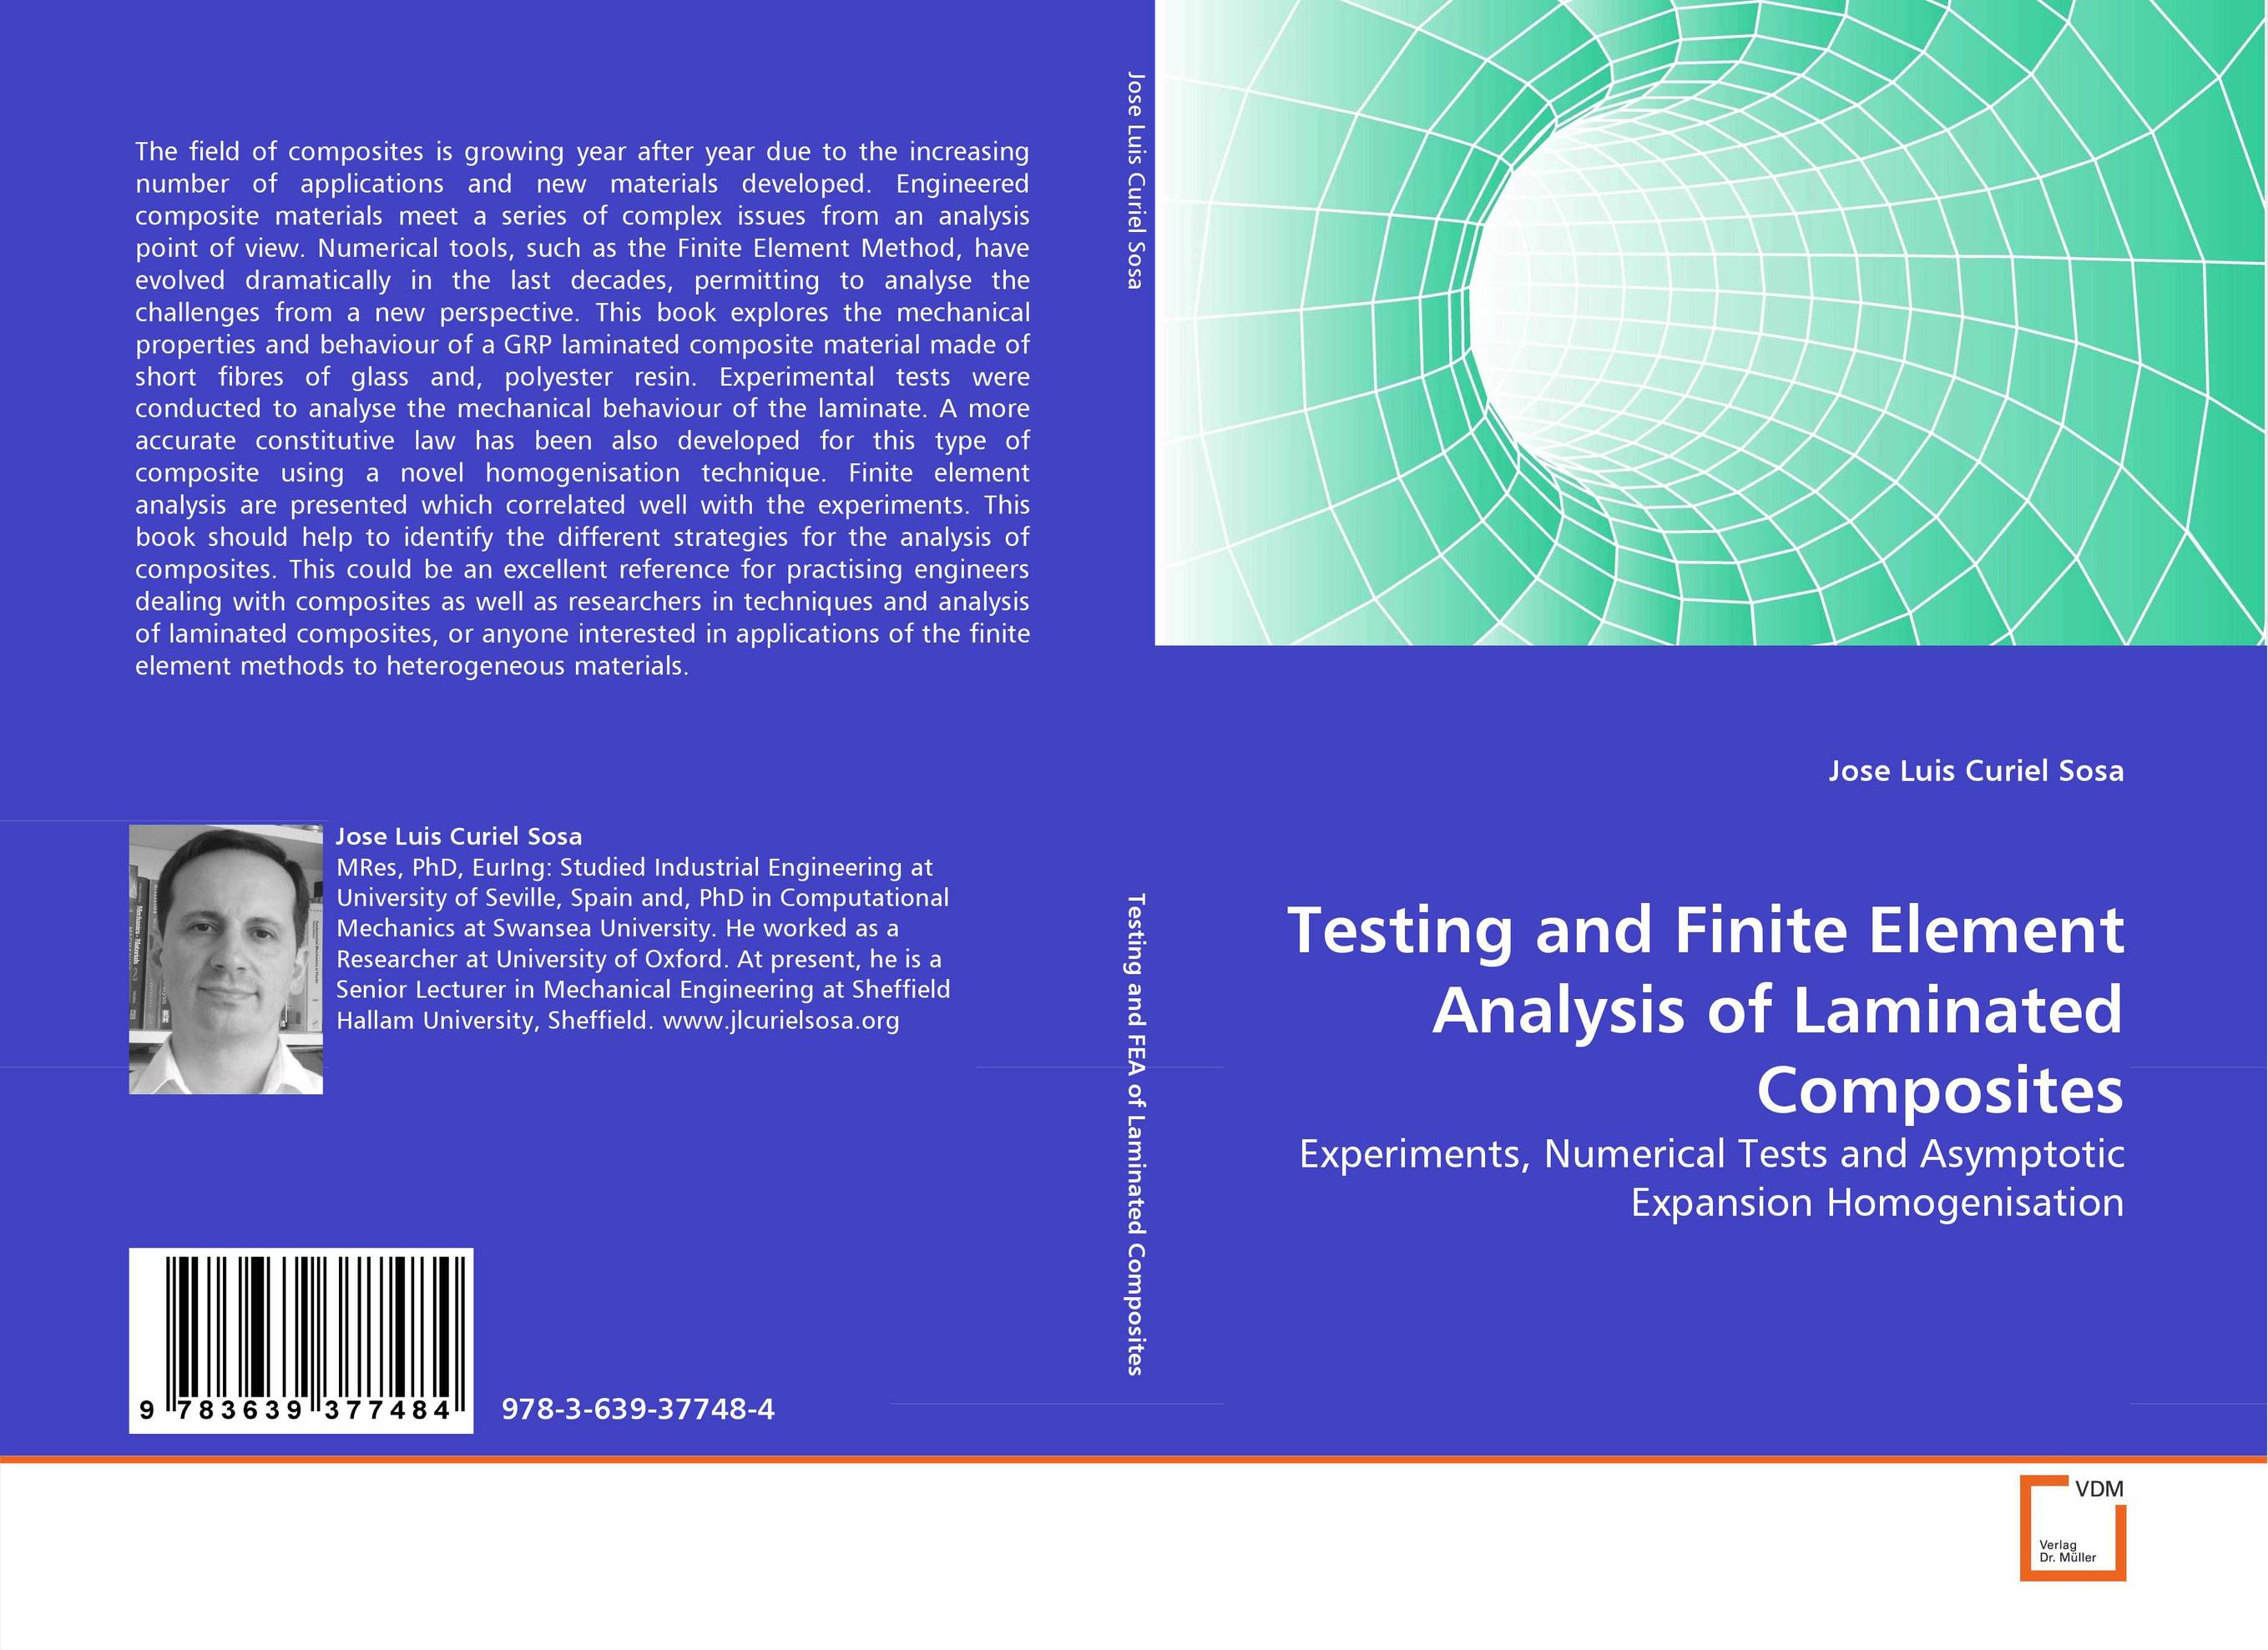 Testing and Finite Element Analysis of Laminated Composites rd cook cook concepts and applications of finite element analysis 2ed